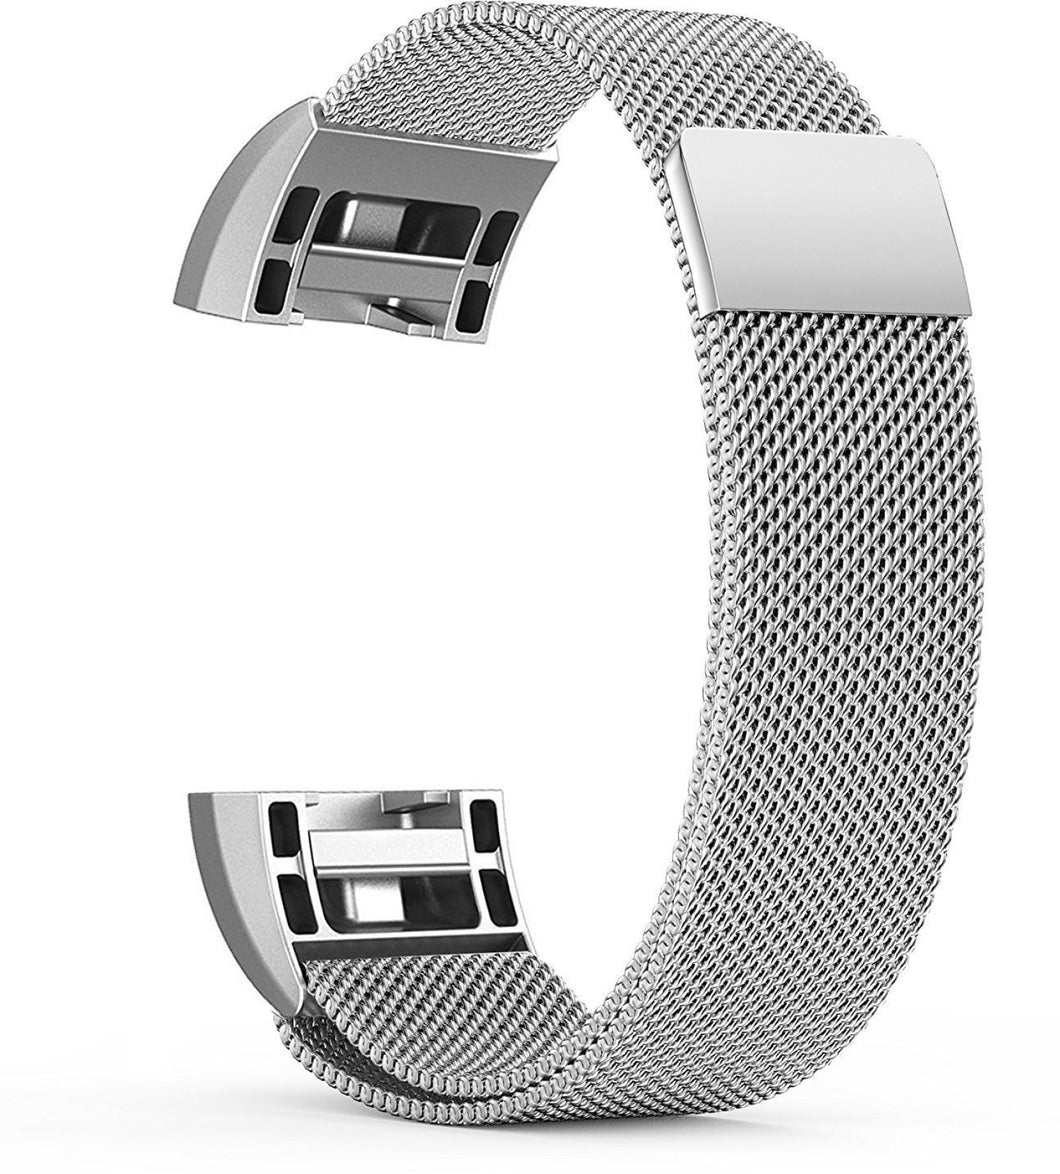 Linxure Milanese Strap for the Fitbit Charge 2 - Large | Monthly Madness